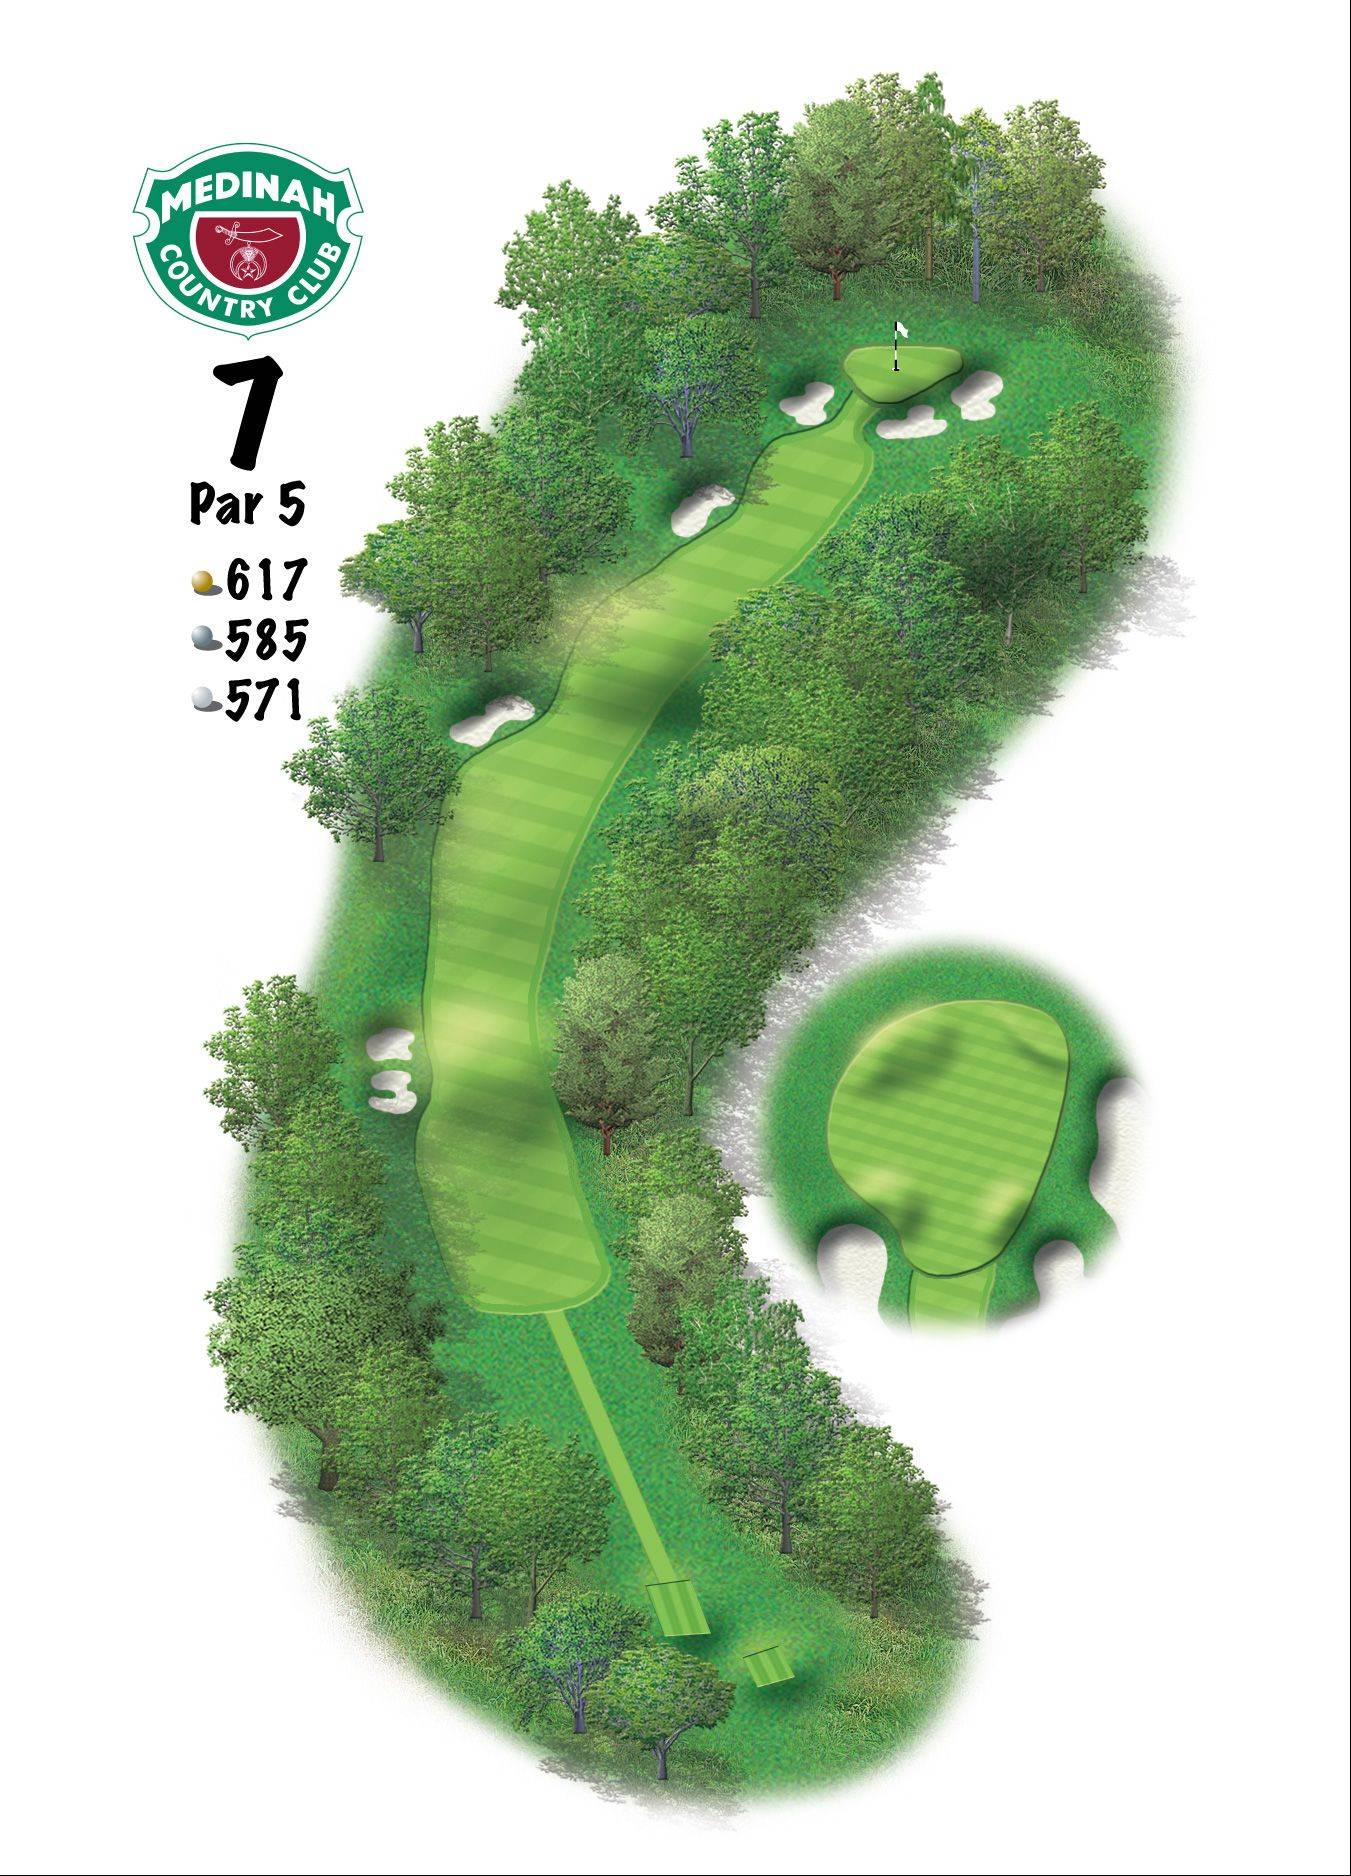 Hole 7 of the Ryder Cup course at Medinah. 617 yards/564 meters, Par-5, Another Medinah Classic, the seventh is the longest par-5 on the course, as well as the membership's No. 1 handicap hole. Do not miss the green or fall into the steep greenside bunkers.